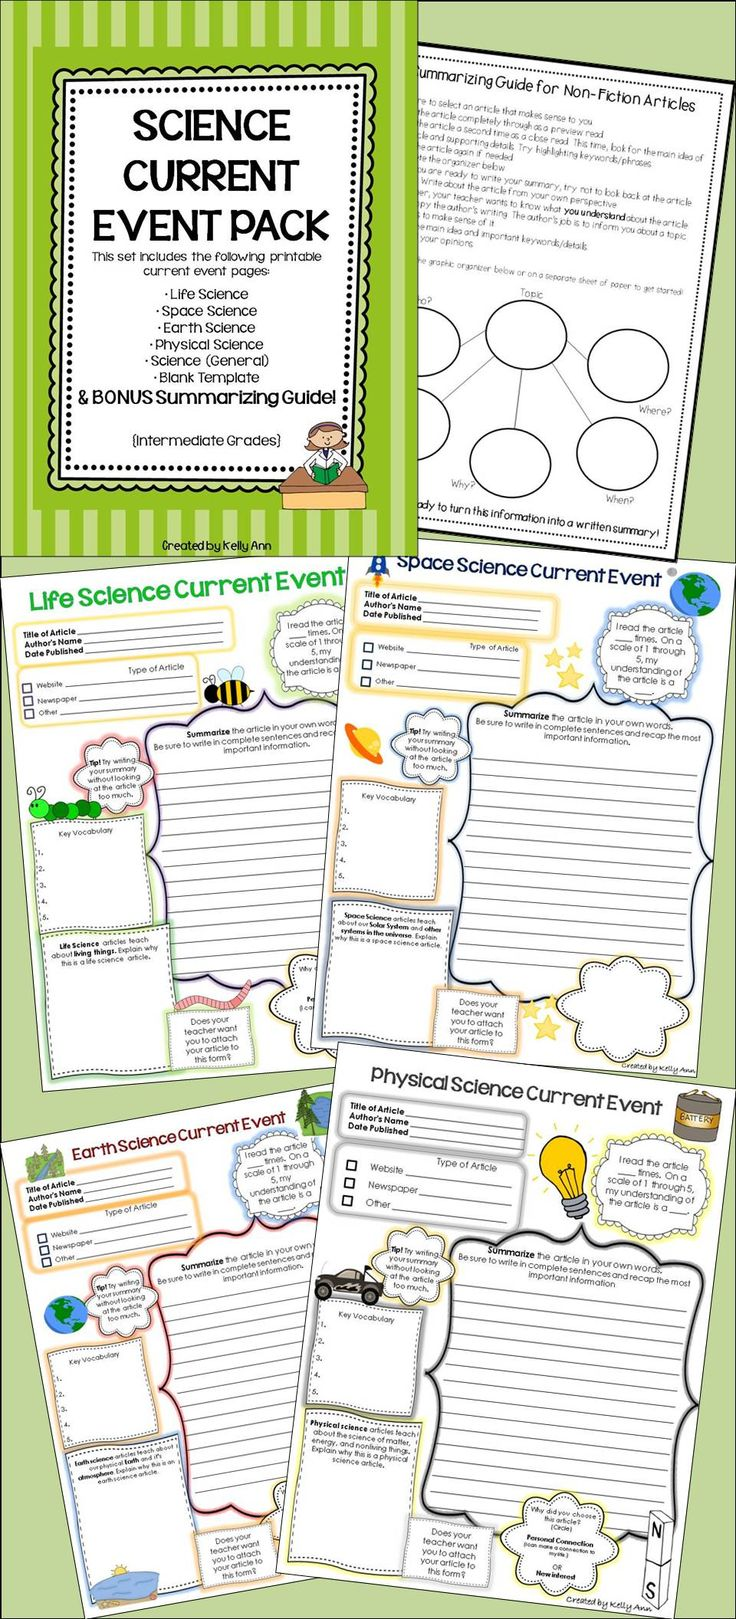 Science Current Event Pack for any branch of science!